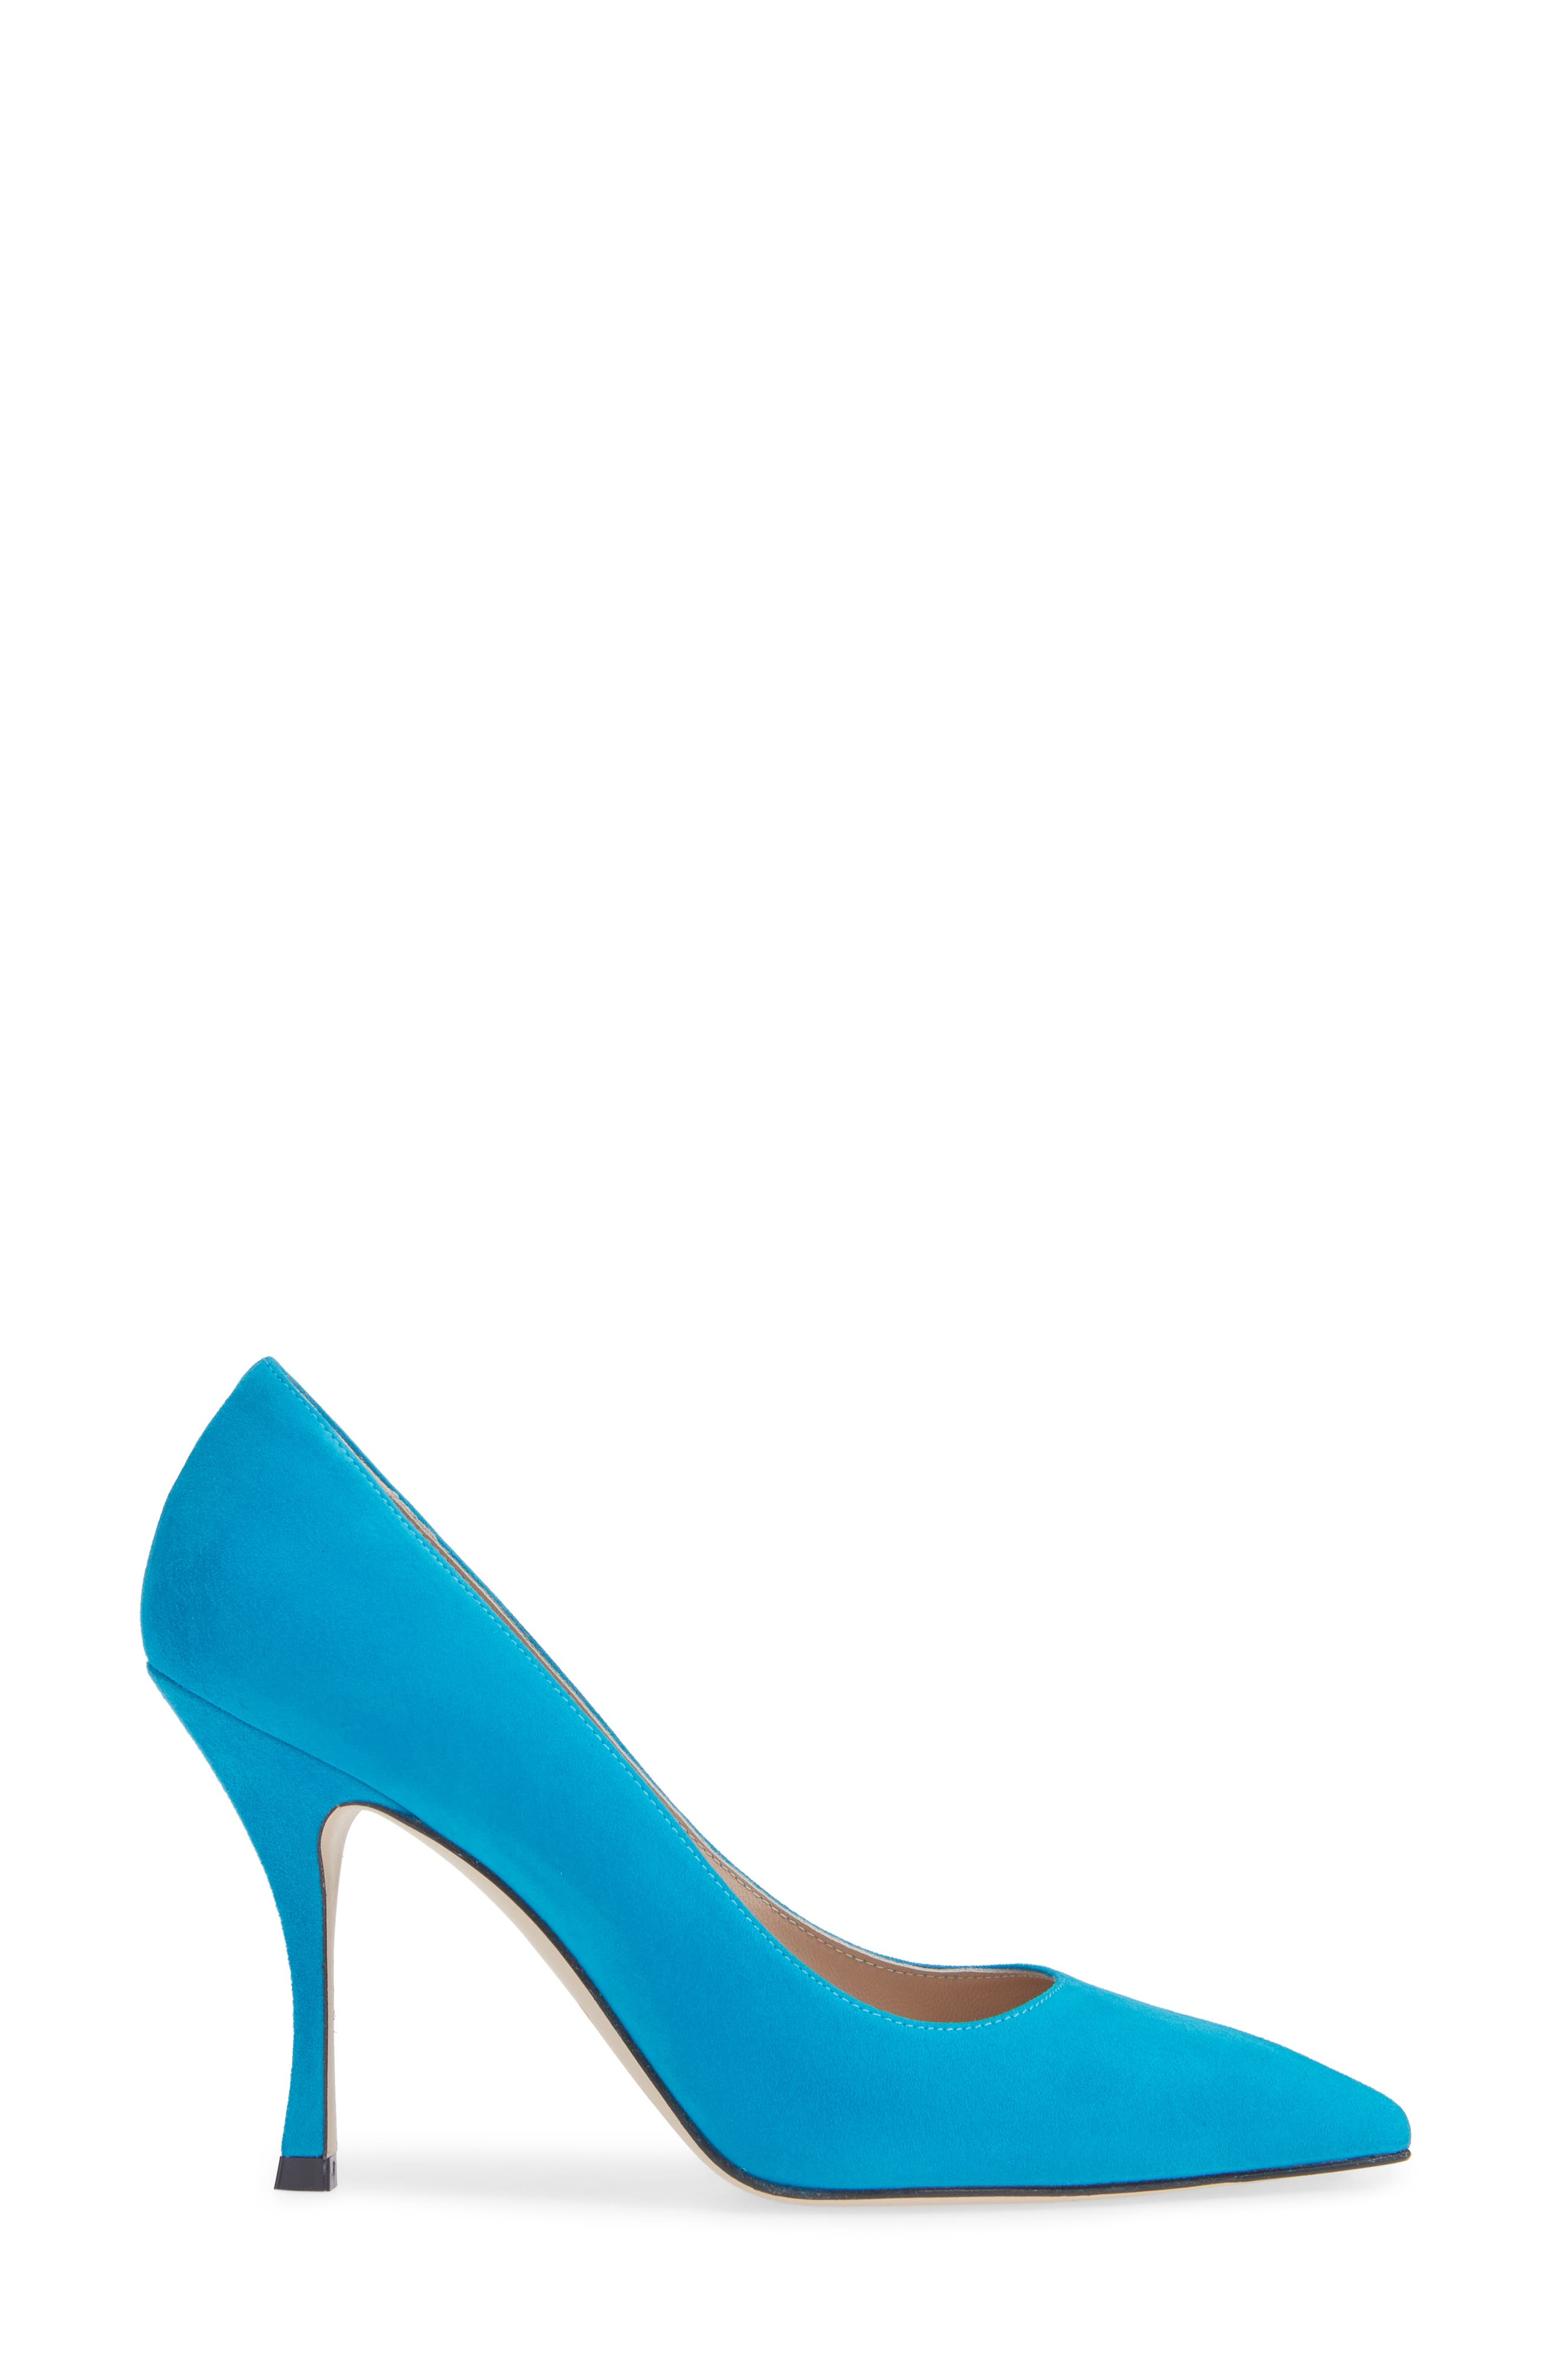 Tippi Pump,                             Alternate thumbnail 3, color,                             OCEANIC SUEDE